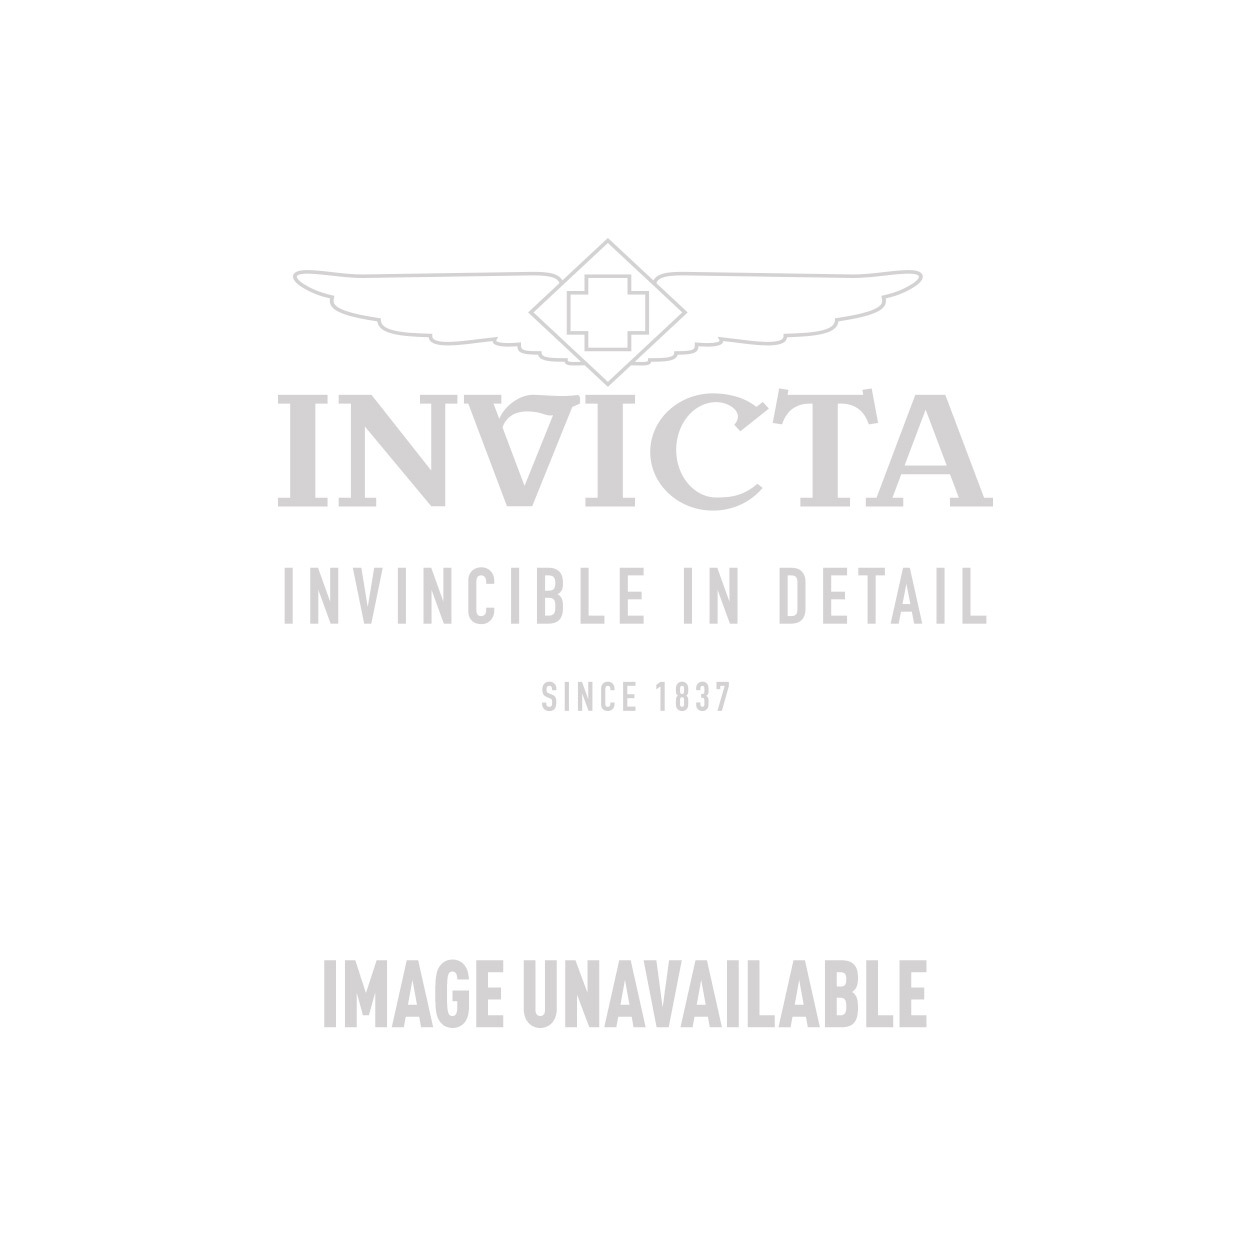 Invicta Specialty Swiss Movement Quartz Watch - Stainless Steel case Stainless Steel band - Model 0366